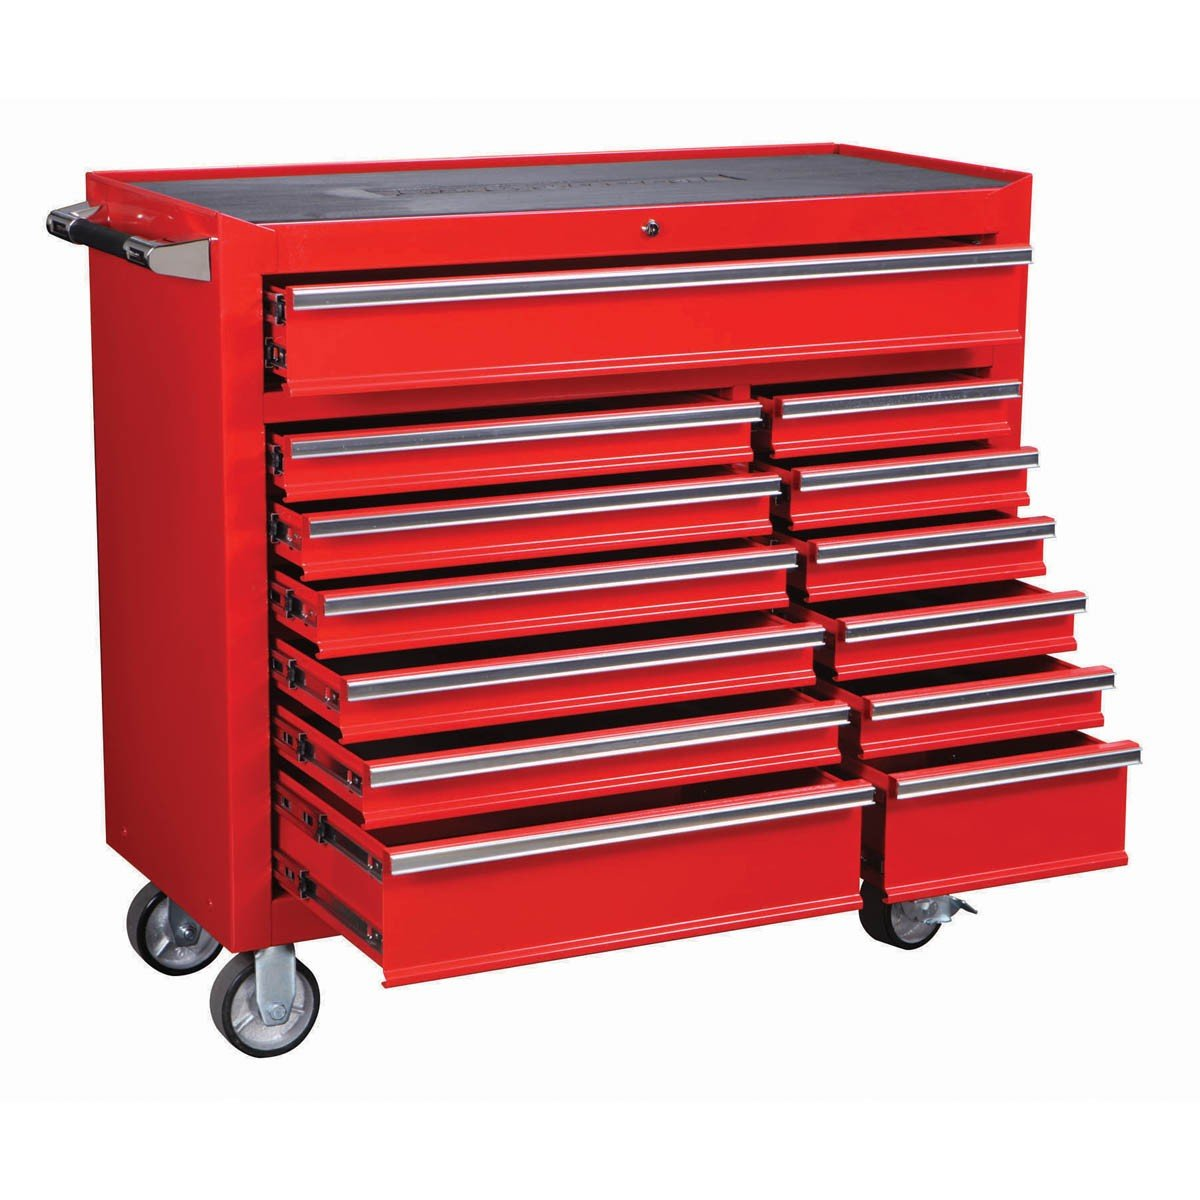 ROLLER CABINET 2633 LB CAPACITY INDUSTRIAL QUALITY 13 DRAWER 44'' by US GENERAL At The Neighborhood Corner Store